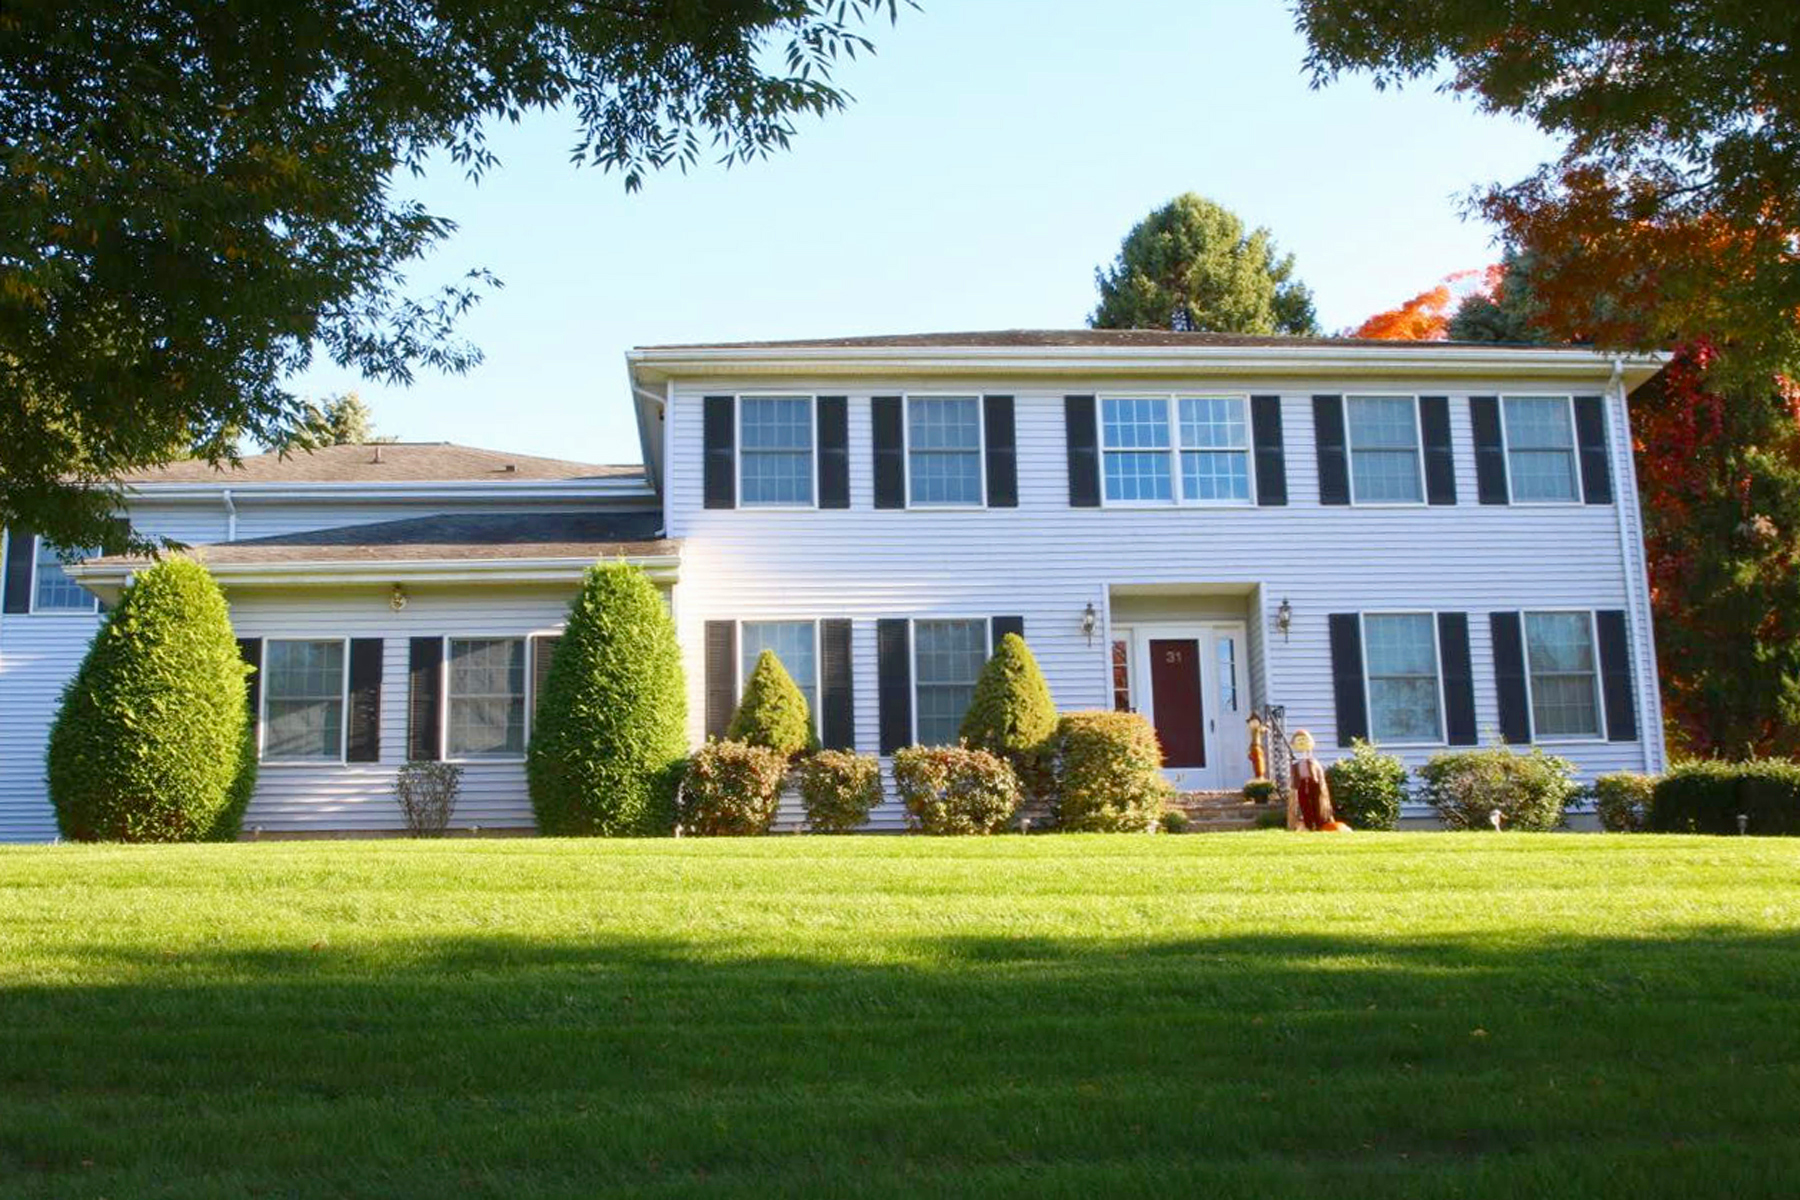 Single Family Home for Sale at Impeccable Mother/Daughter On Beautifully Lansdscaped Corner Lot 31 Meyersville Road Gillette, New Jersey 07933 United States